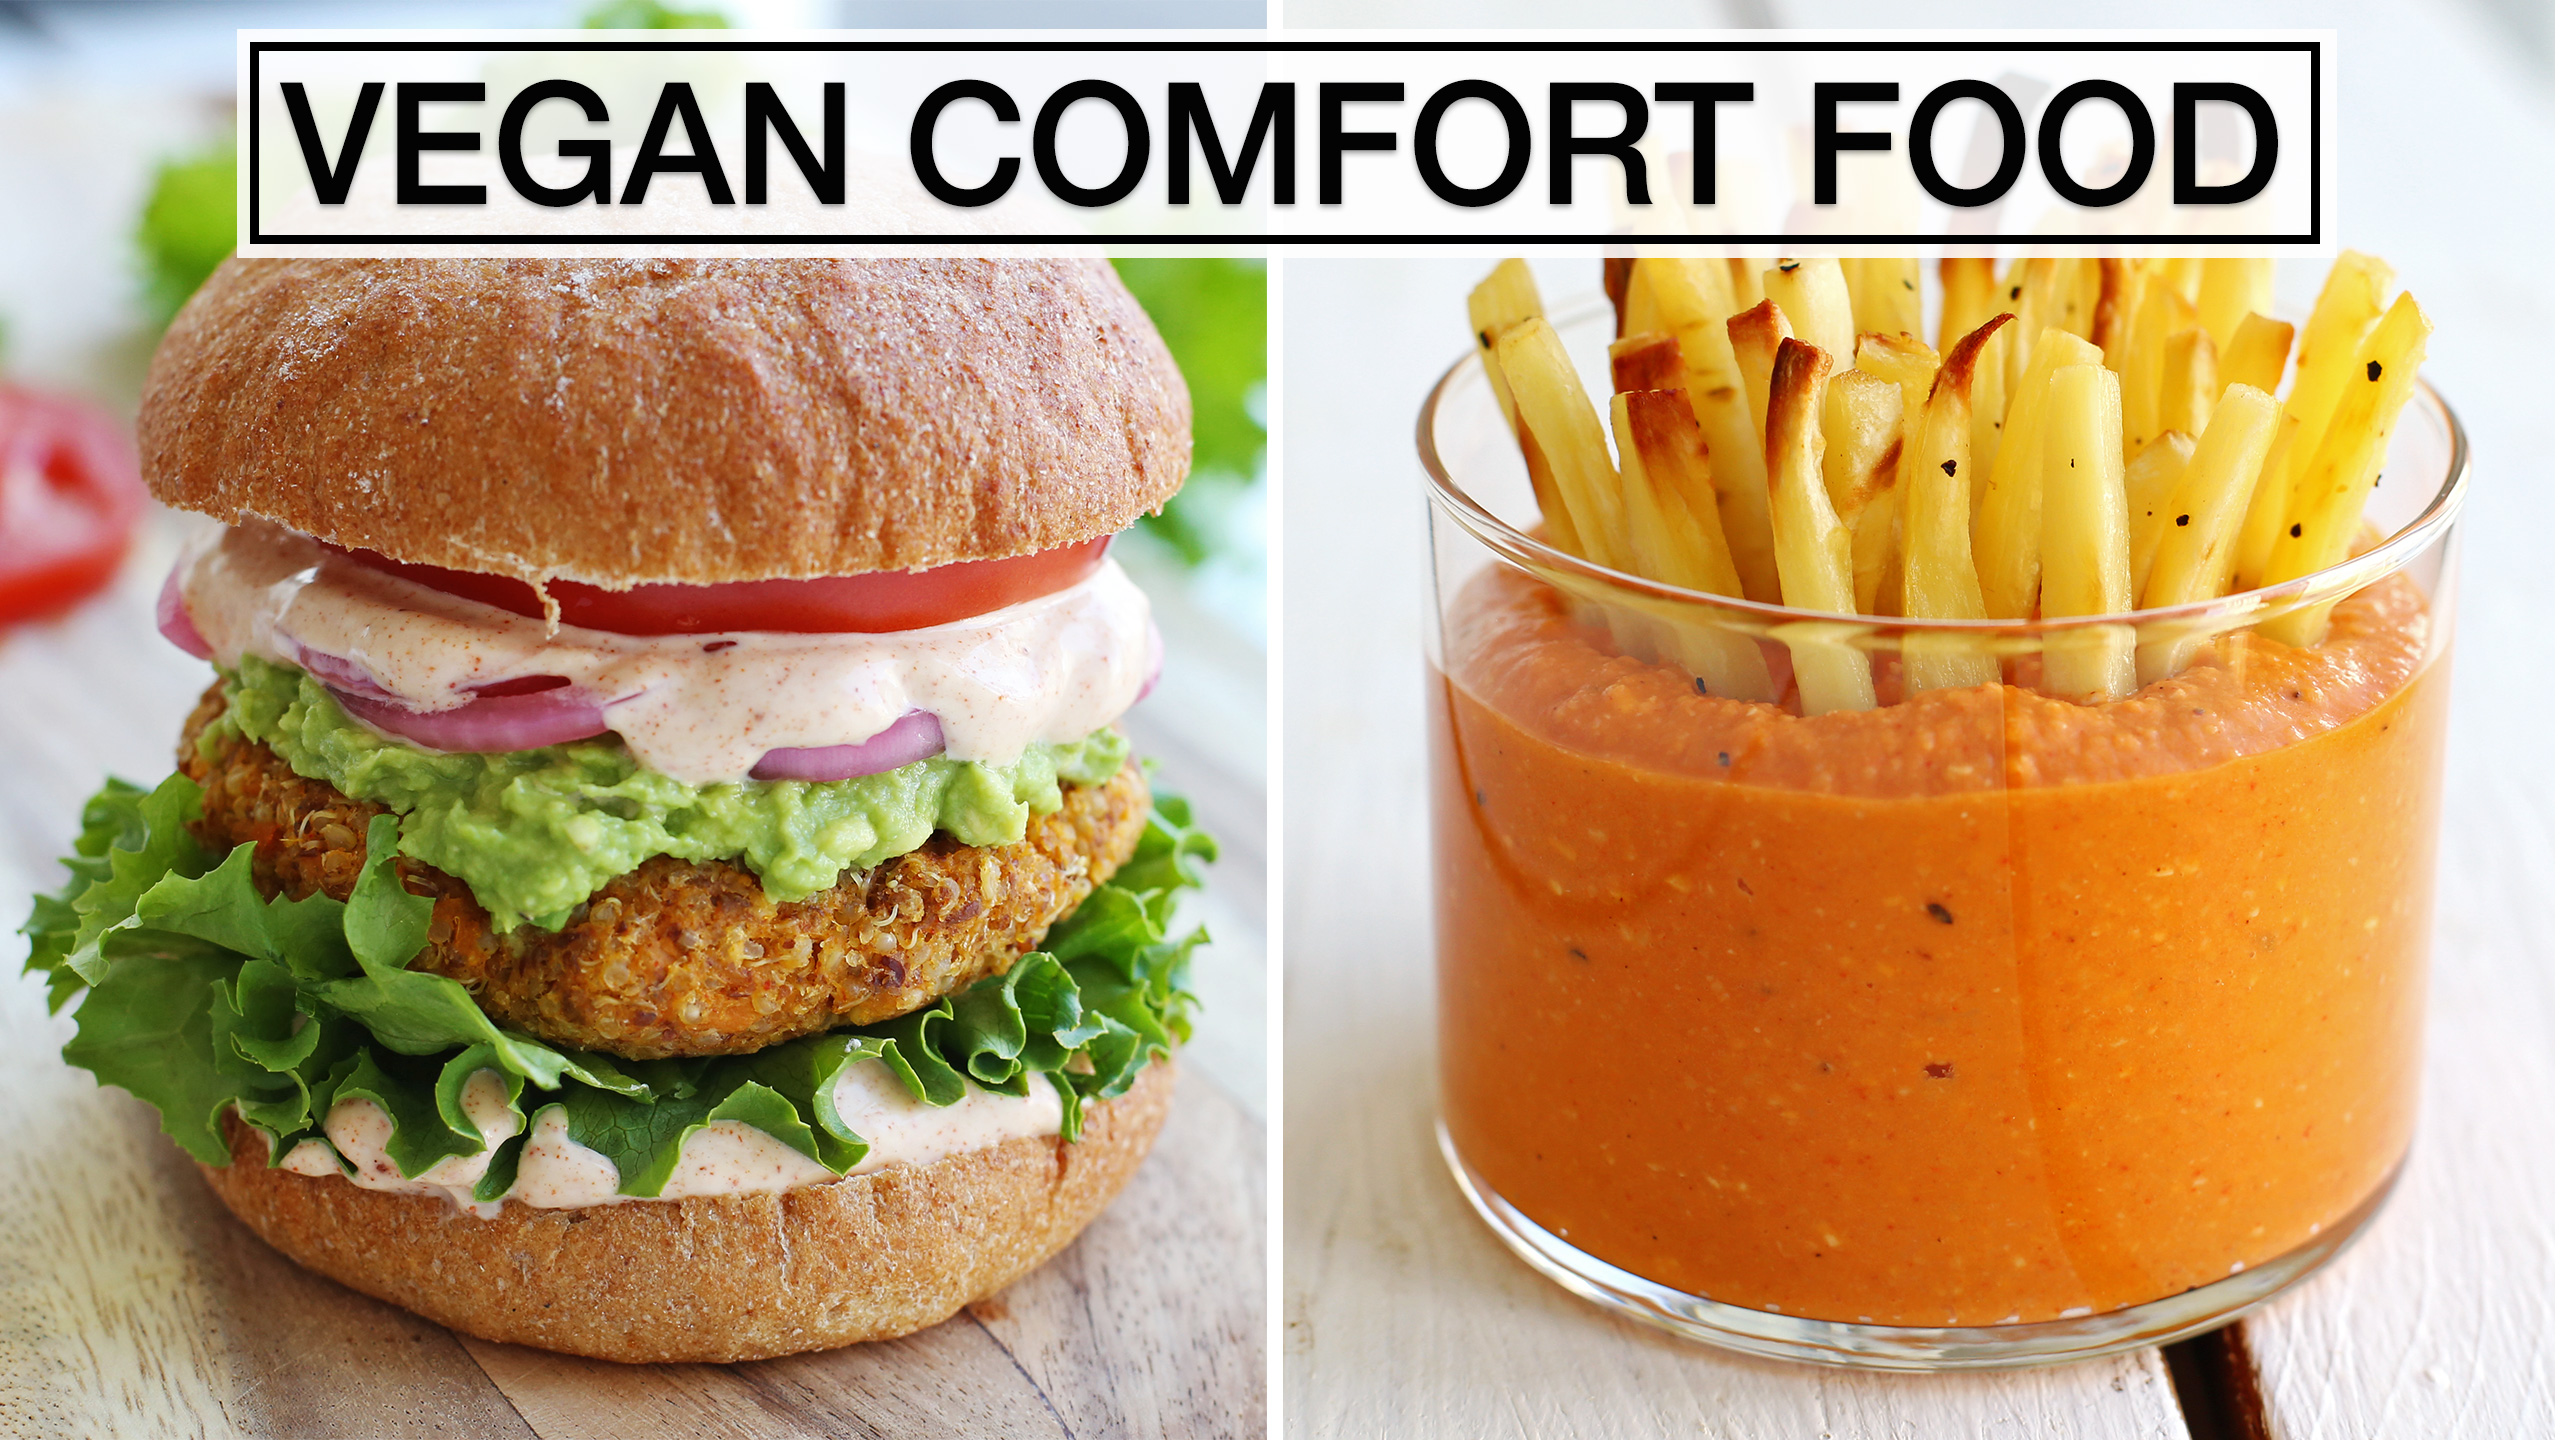 Vegan comfort food 3 yummy fall recipes fablunch vegan comfort food 3 yummy fall recipes forumfinder Choice Image